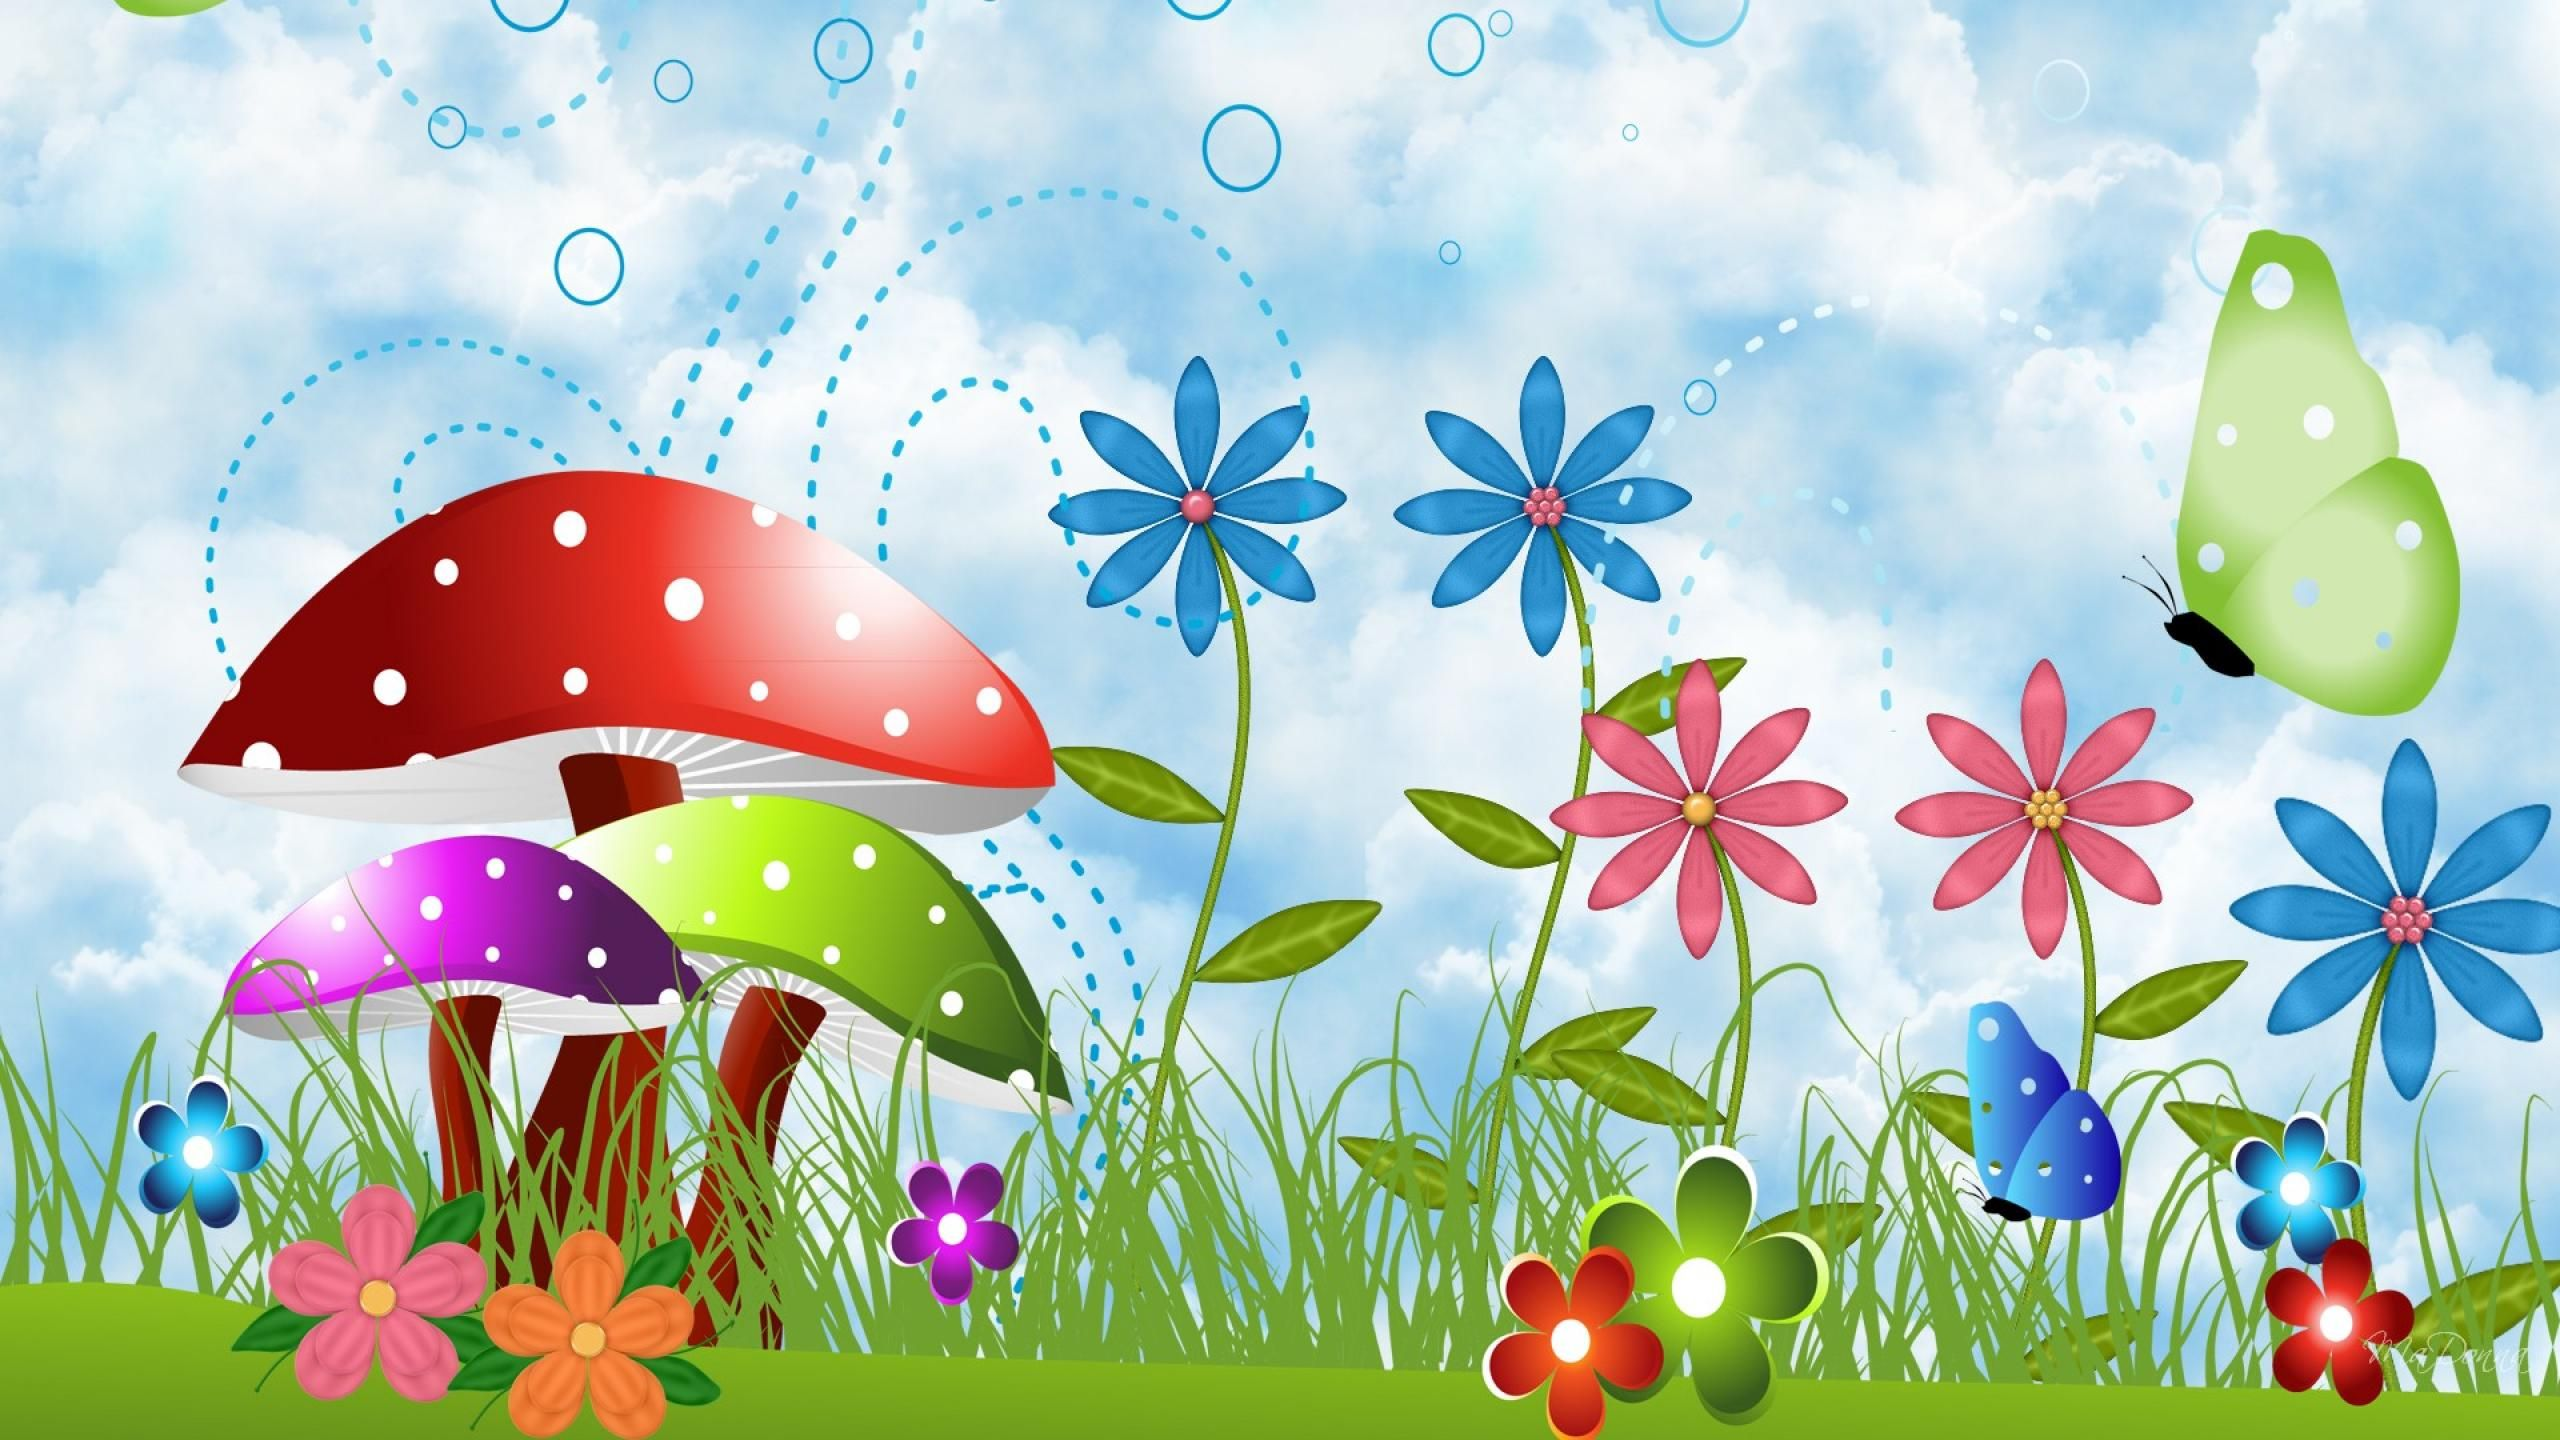 Spring Flowers And Butterflies Hd Background Wallpaper 16 Hd